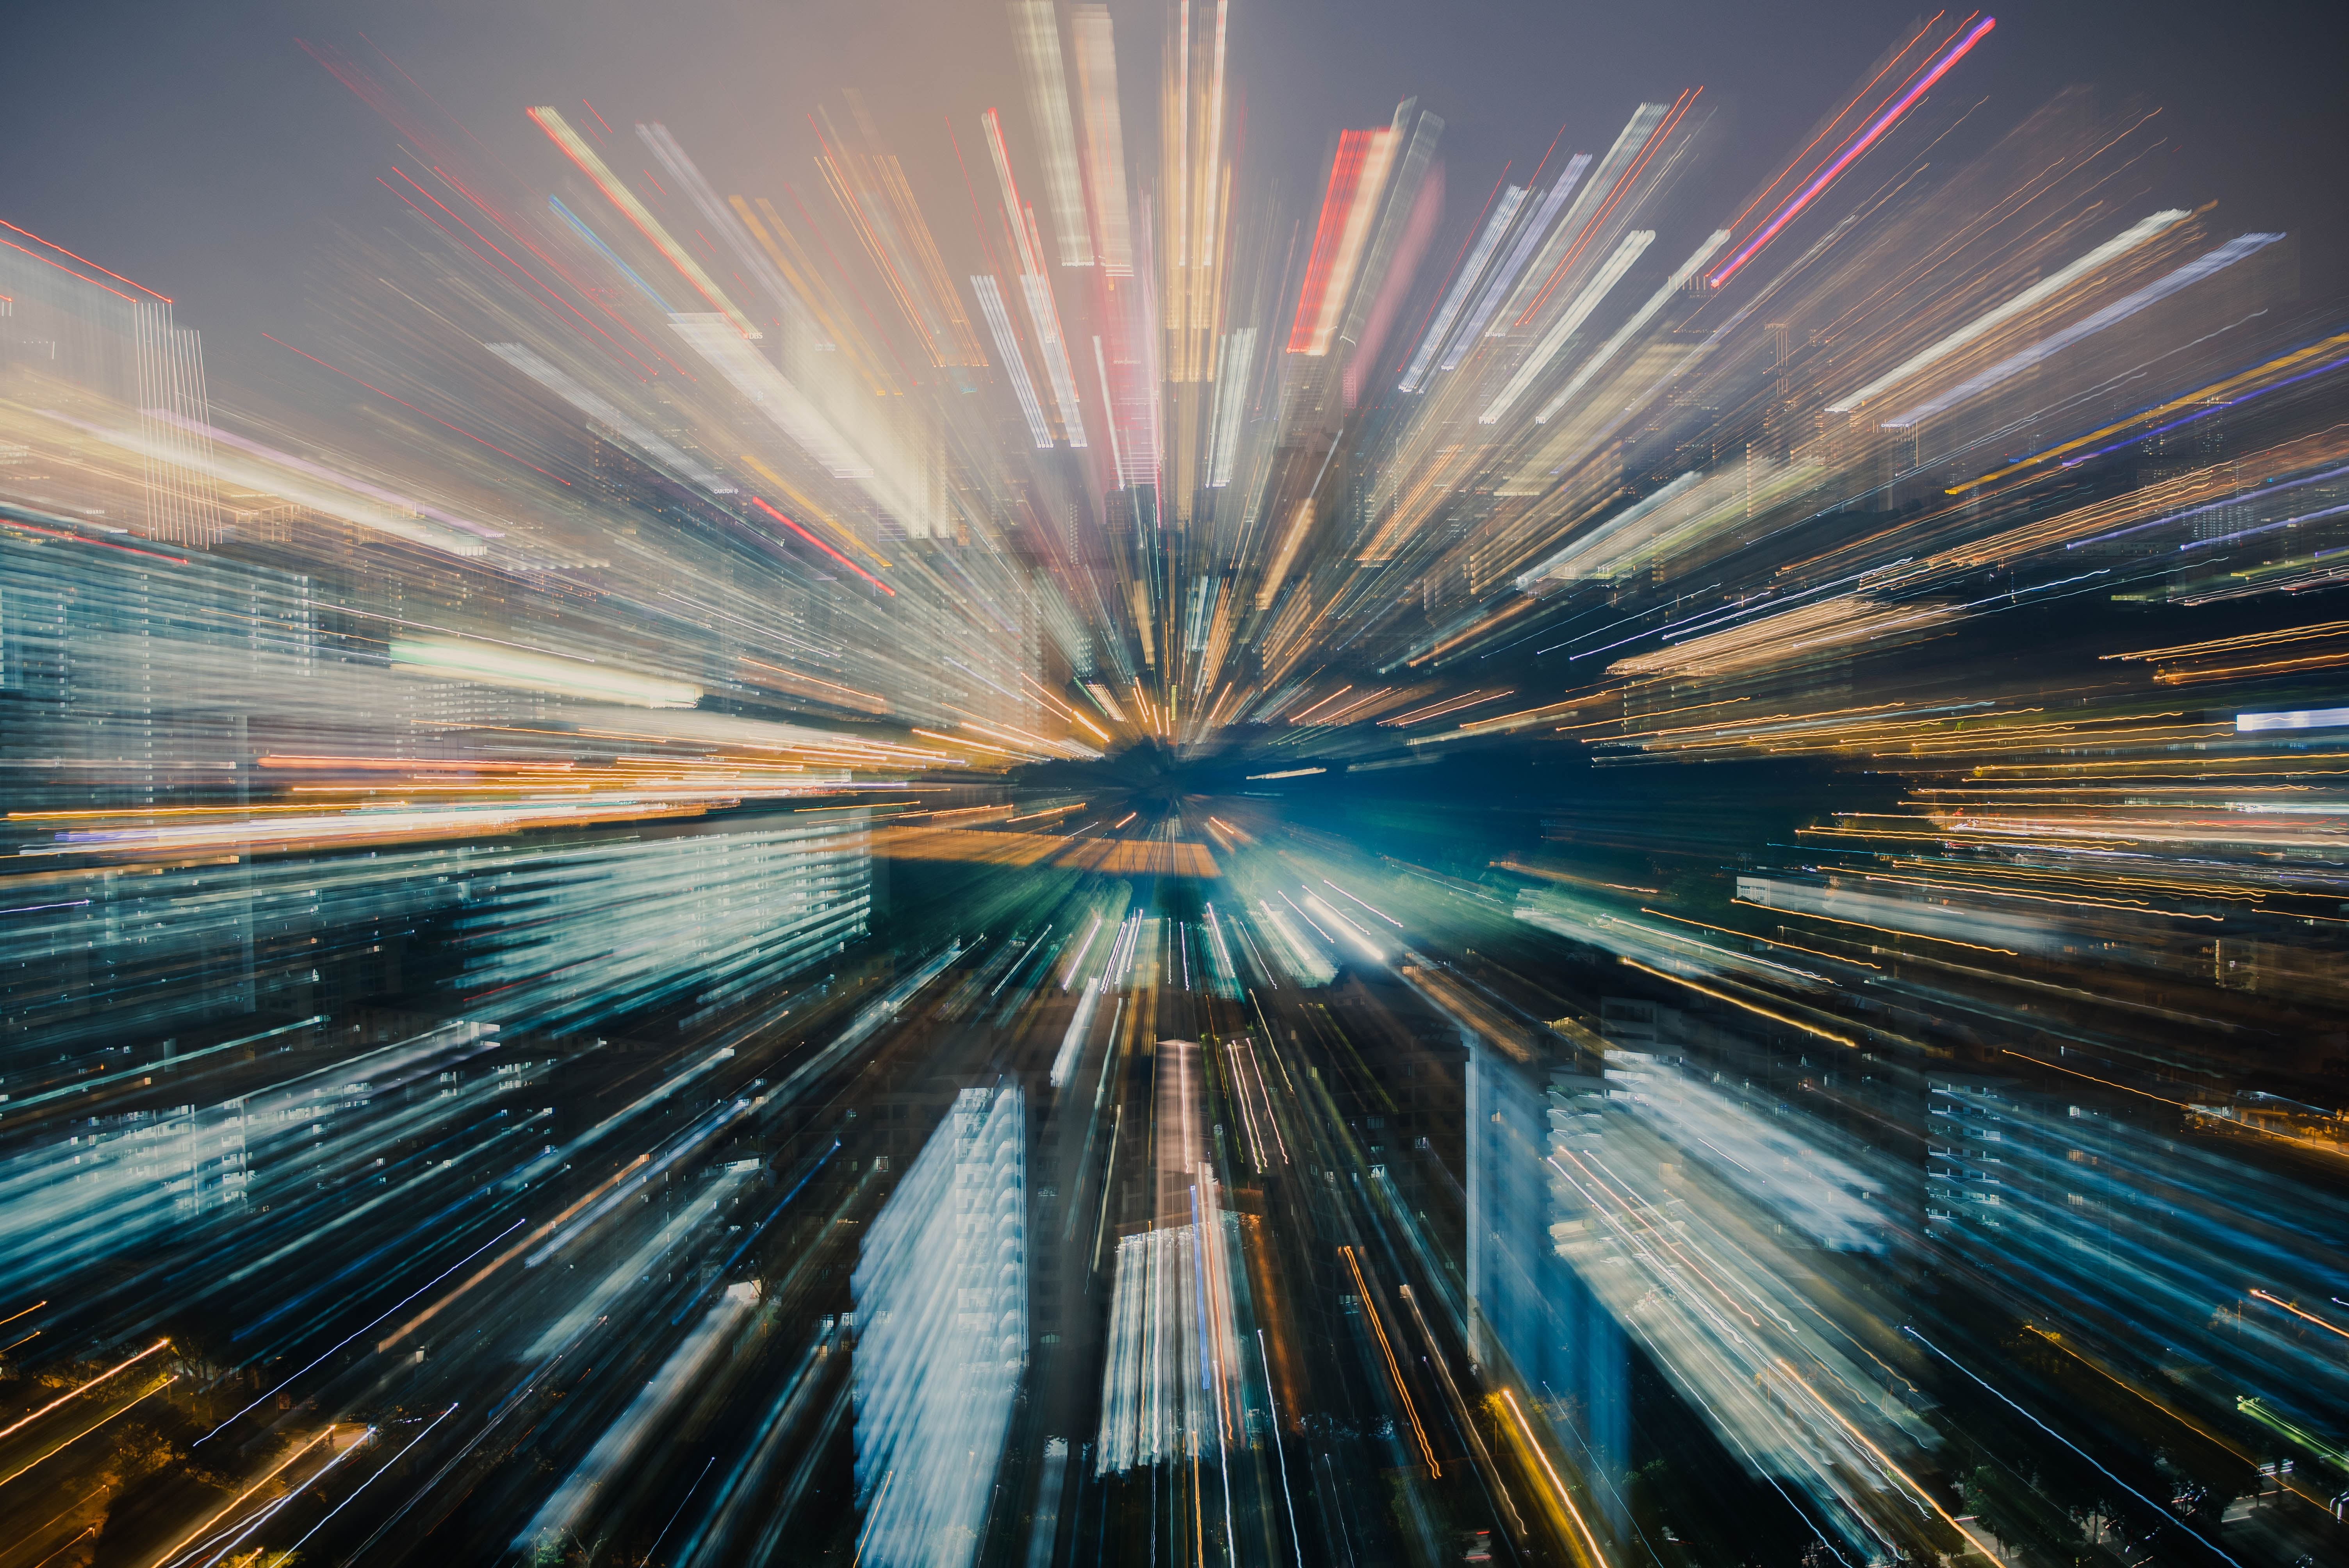 Data Center Systems Is Your Business Connectivity Speed Fast Enough Skyline Blurred by Warp Speed